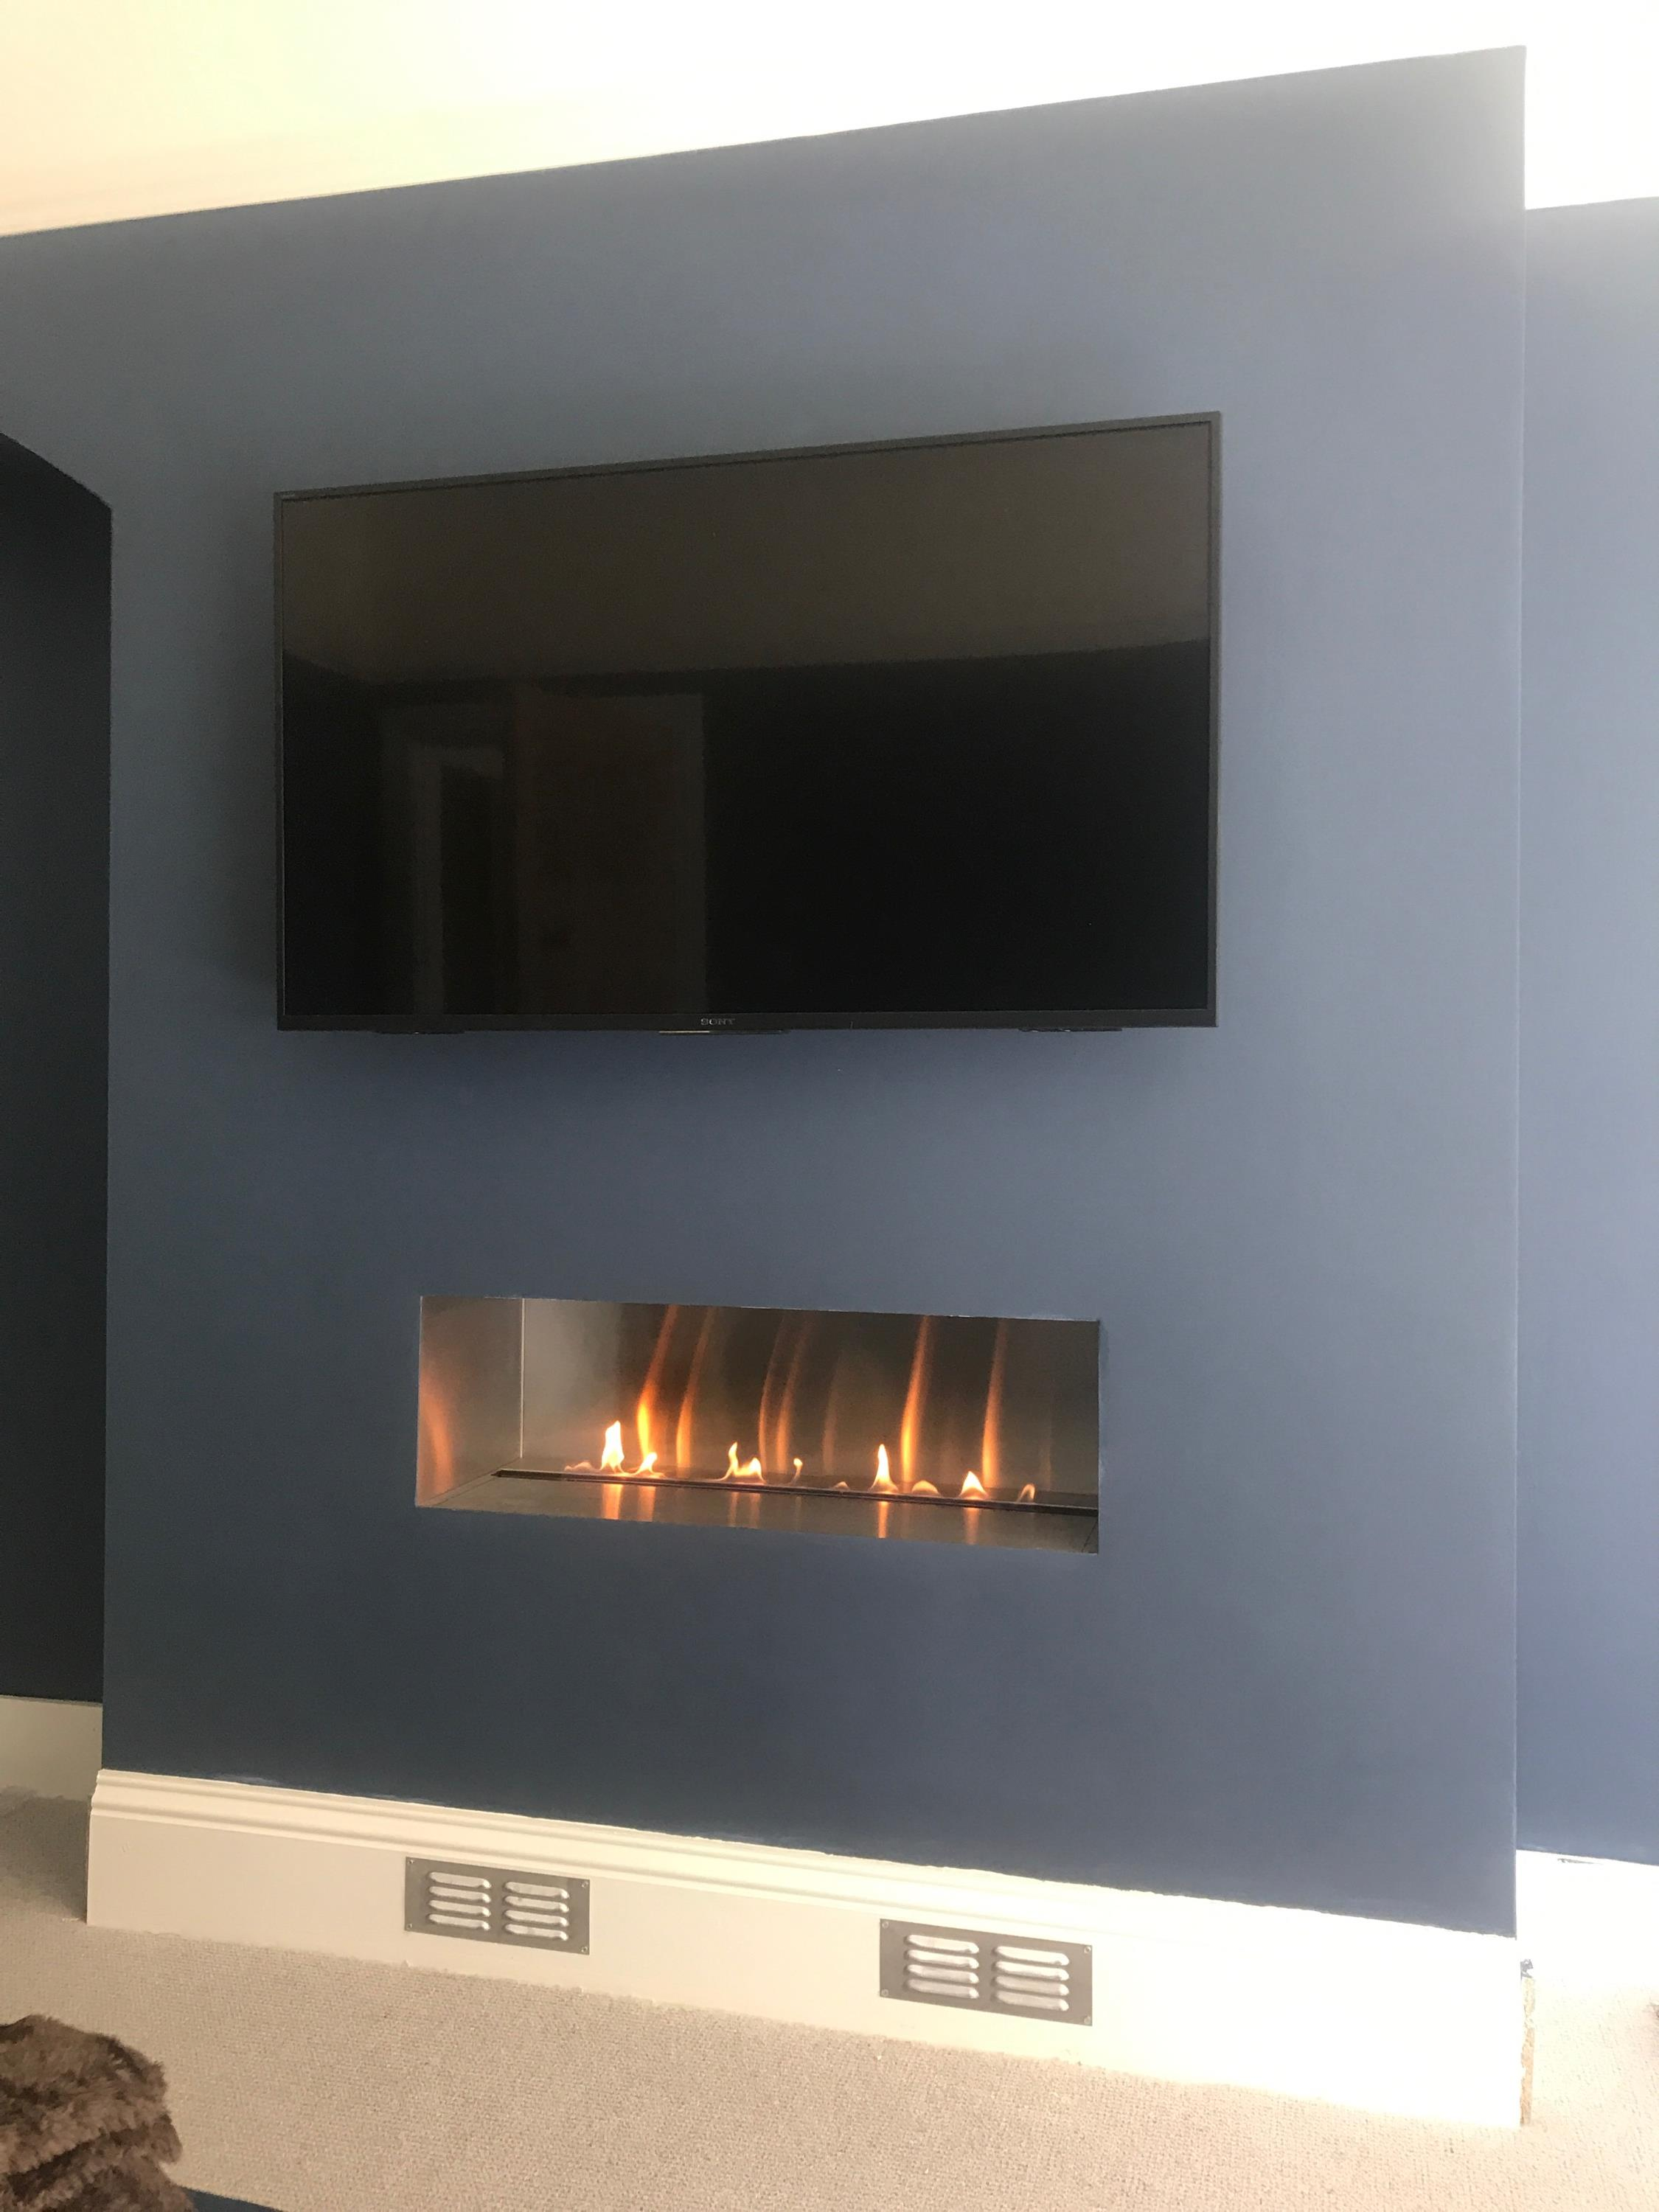 york ethanol fireplaces wall mounted empire new plaza ae bioethanol ready made decoflame product bio pictures fireplace